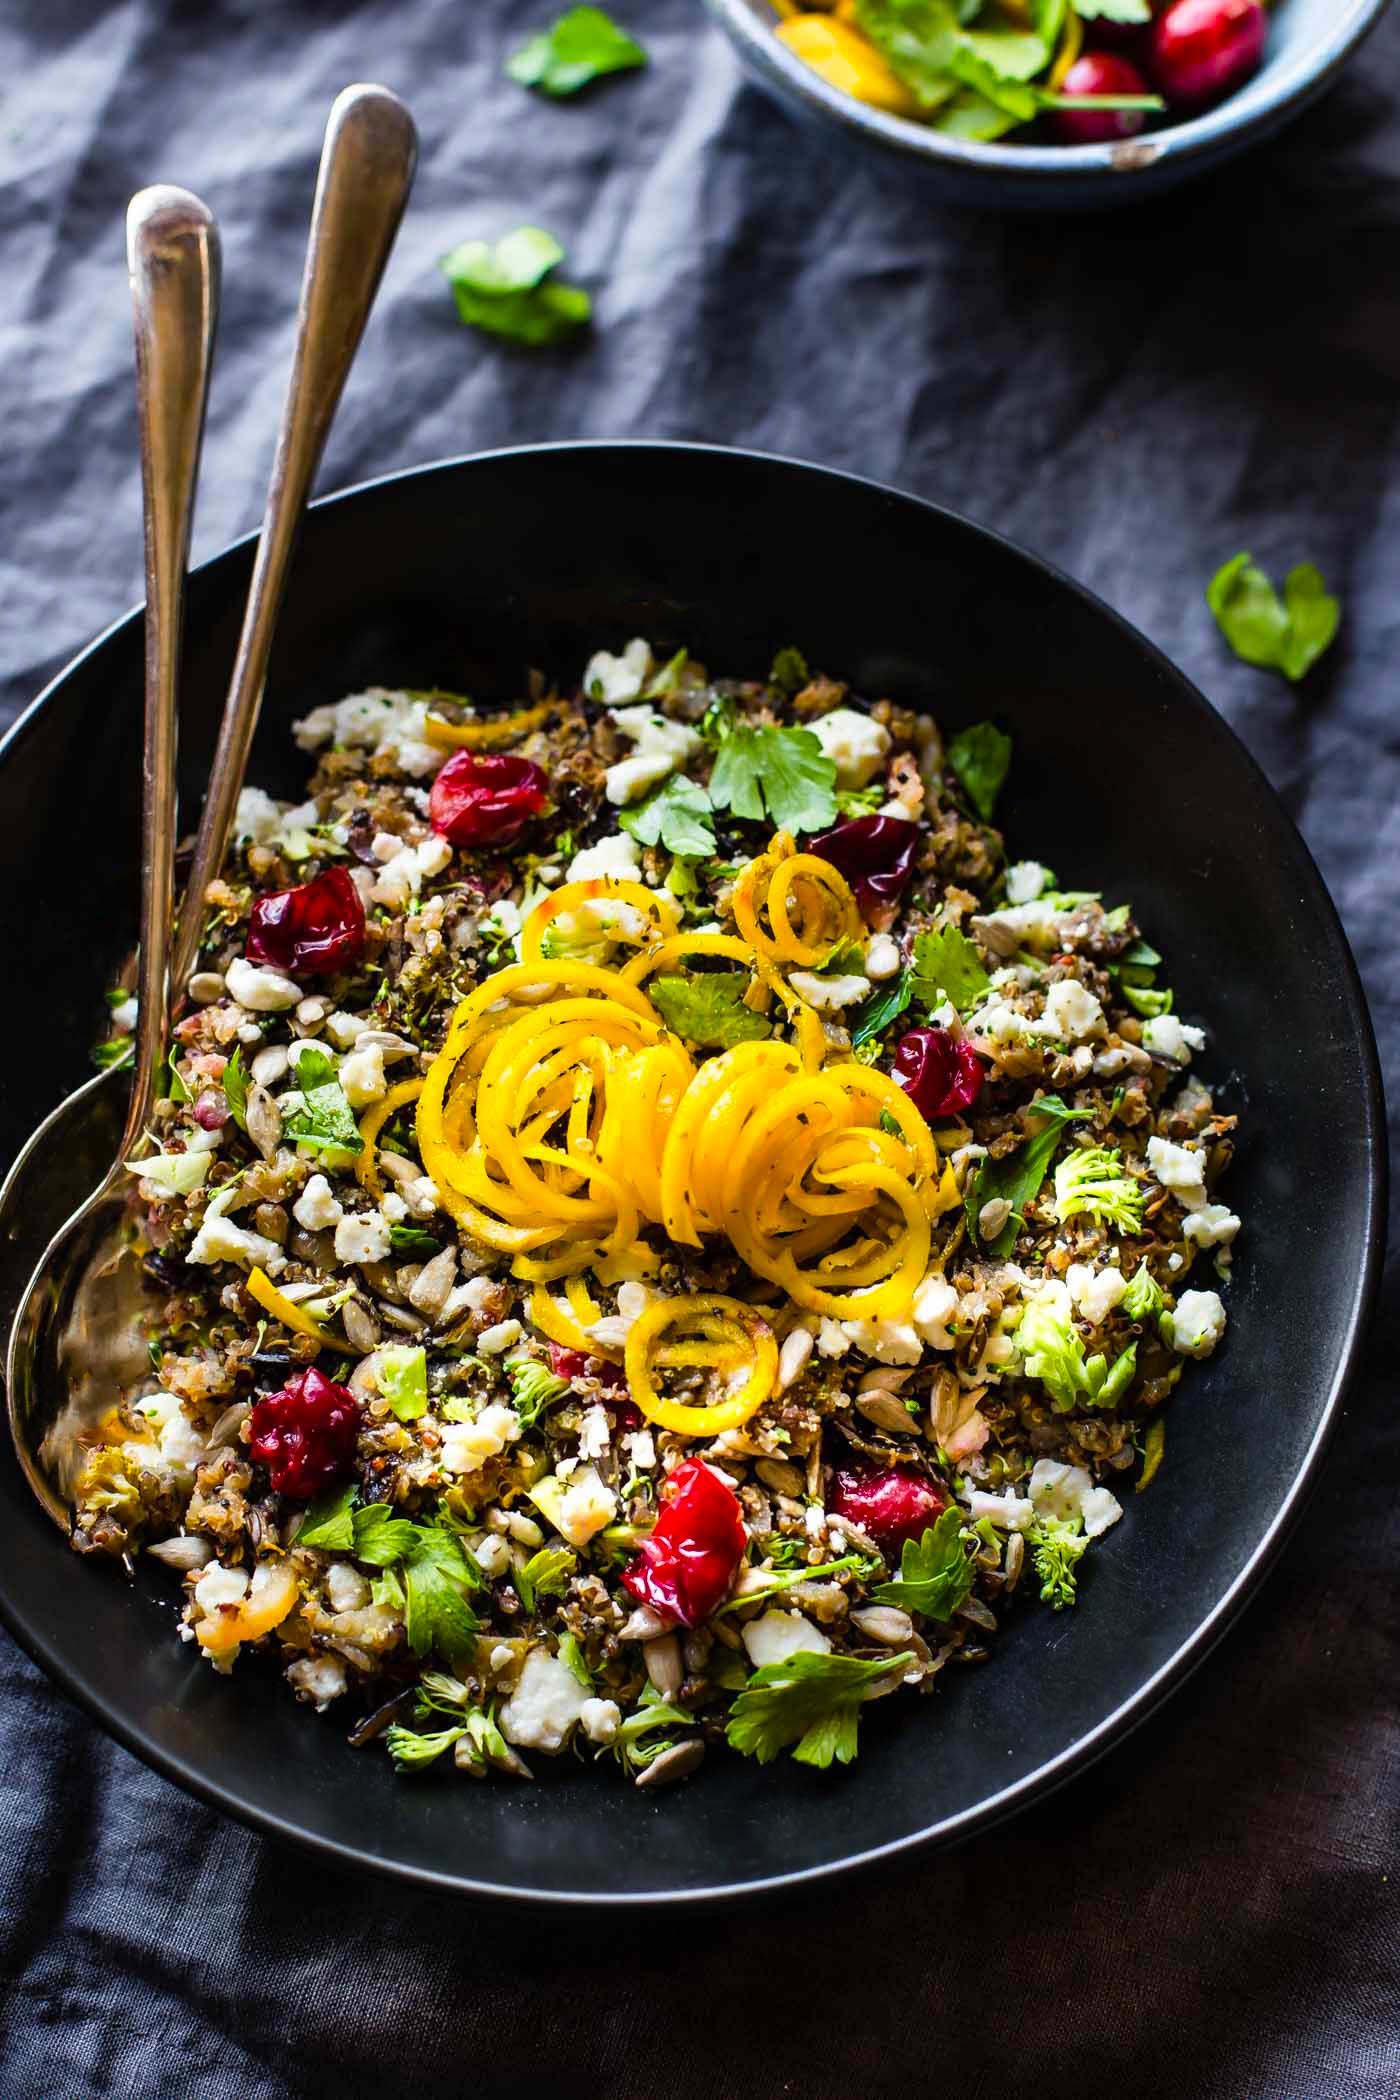 A bowl of healthy quinoa pilaf with beets, broccoli and cranberries